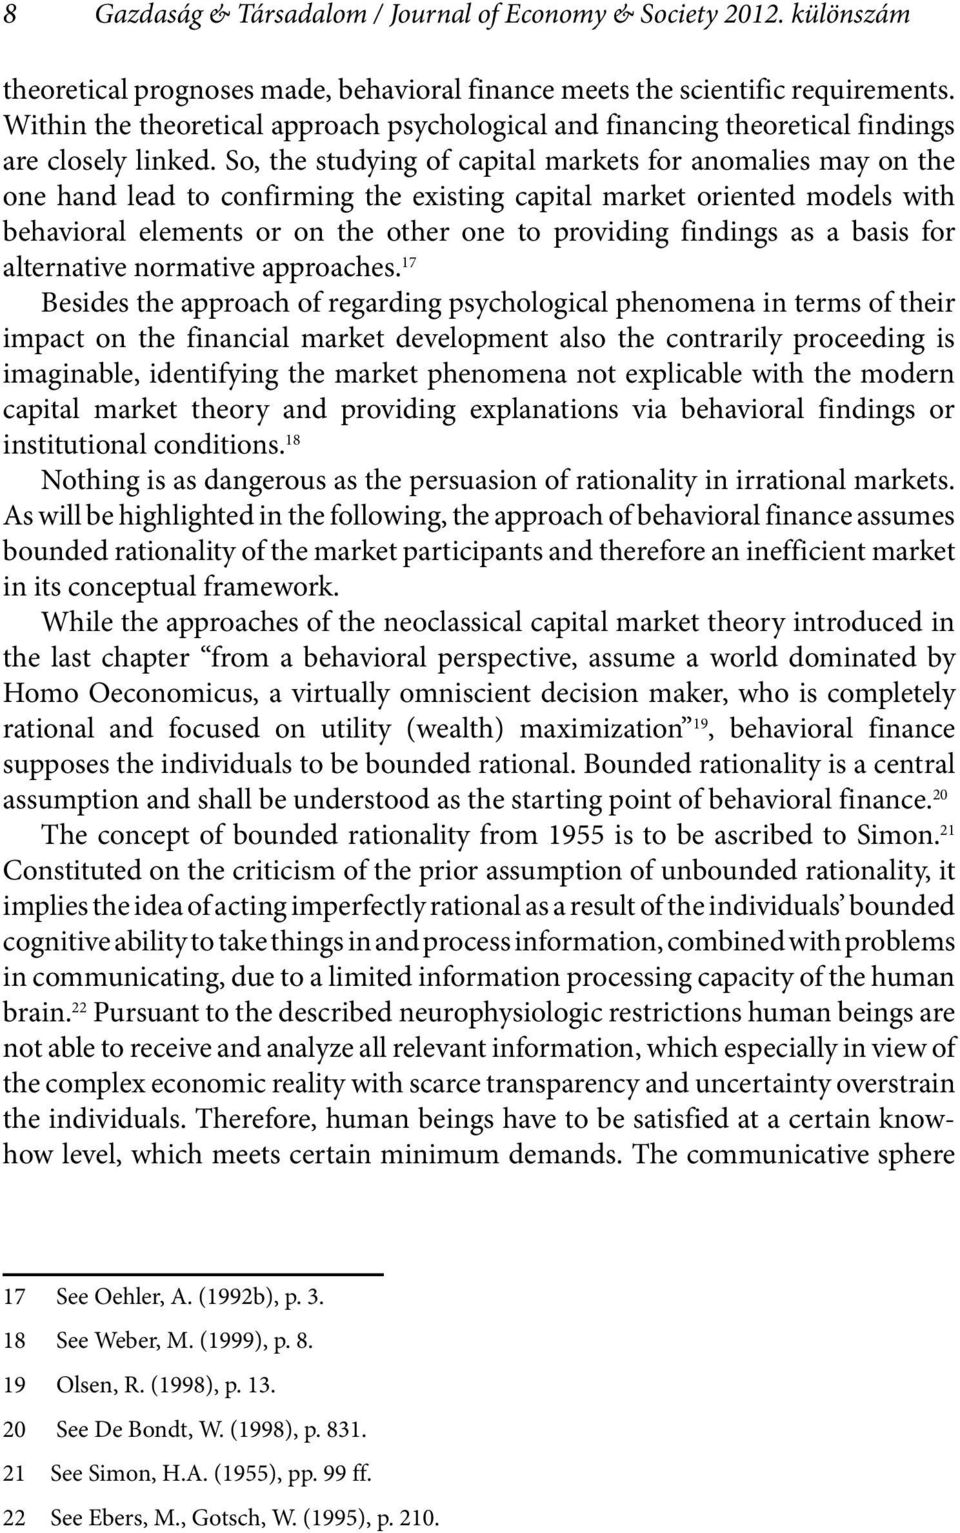 So, the studying of capital markets for anomalies may on the one hand lead to confirming the existing capital market oriented models with behavioral elements or on the other one to providing findings